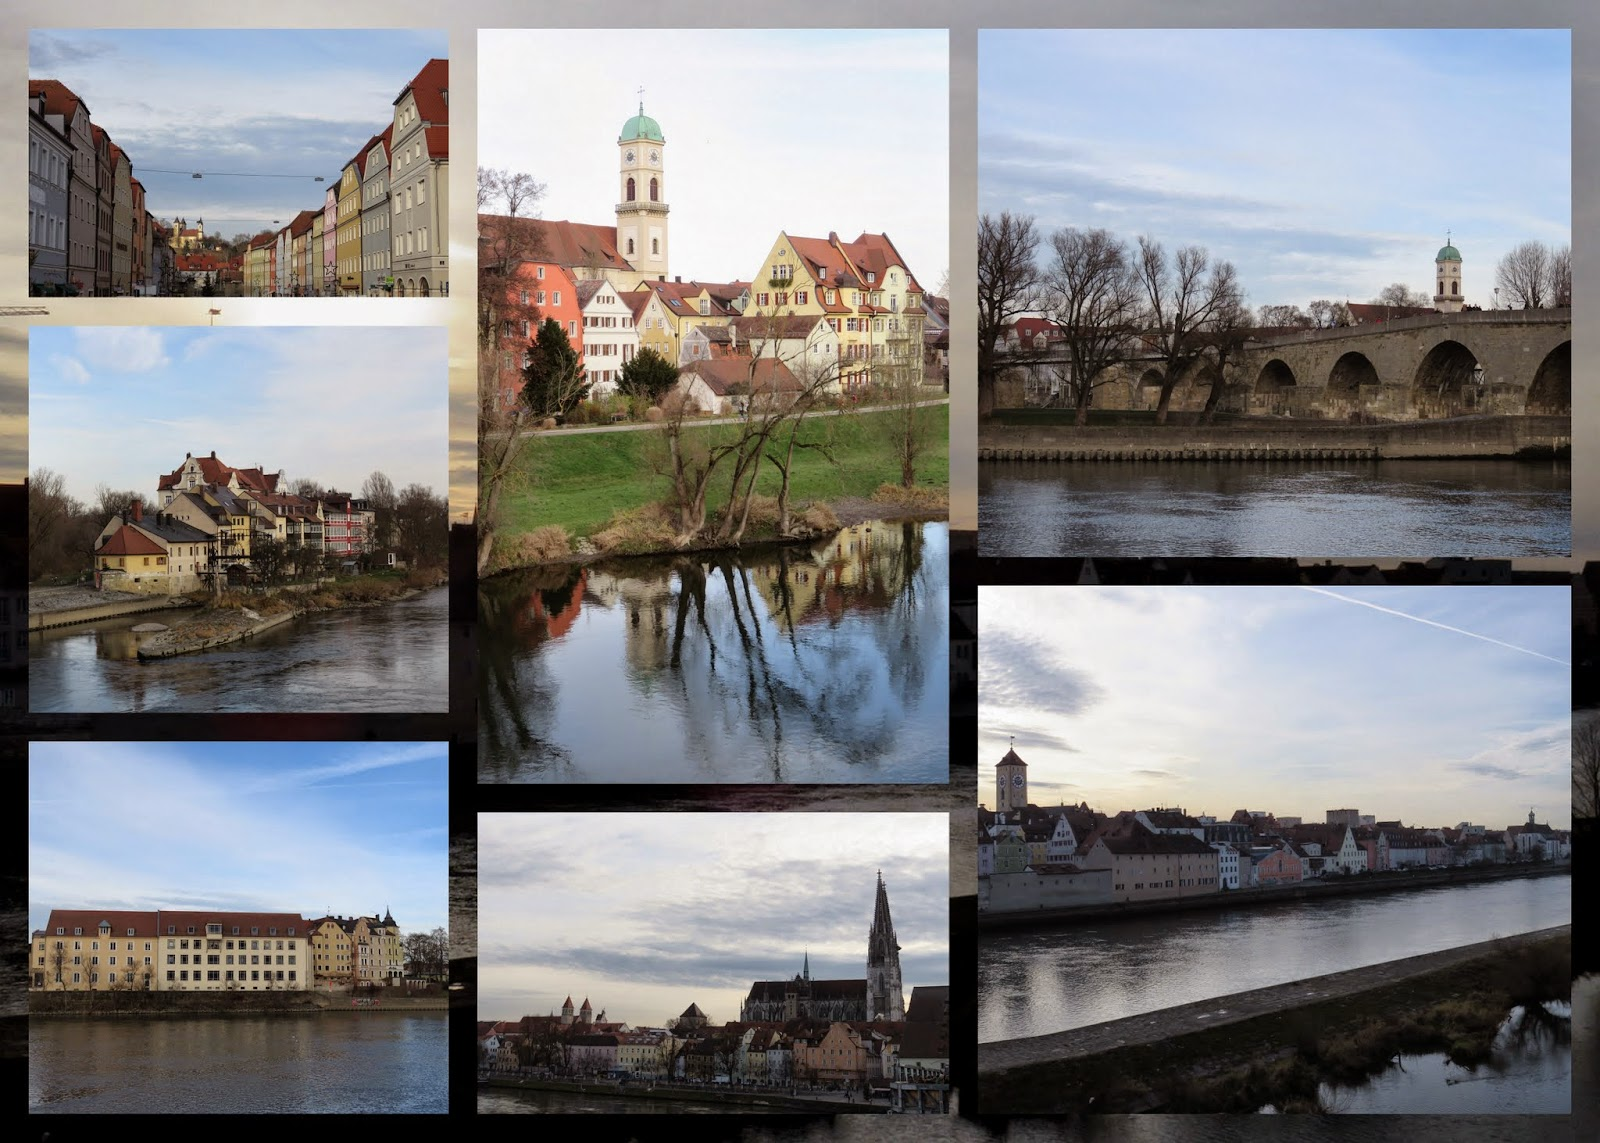 Regensburg - On the Danube